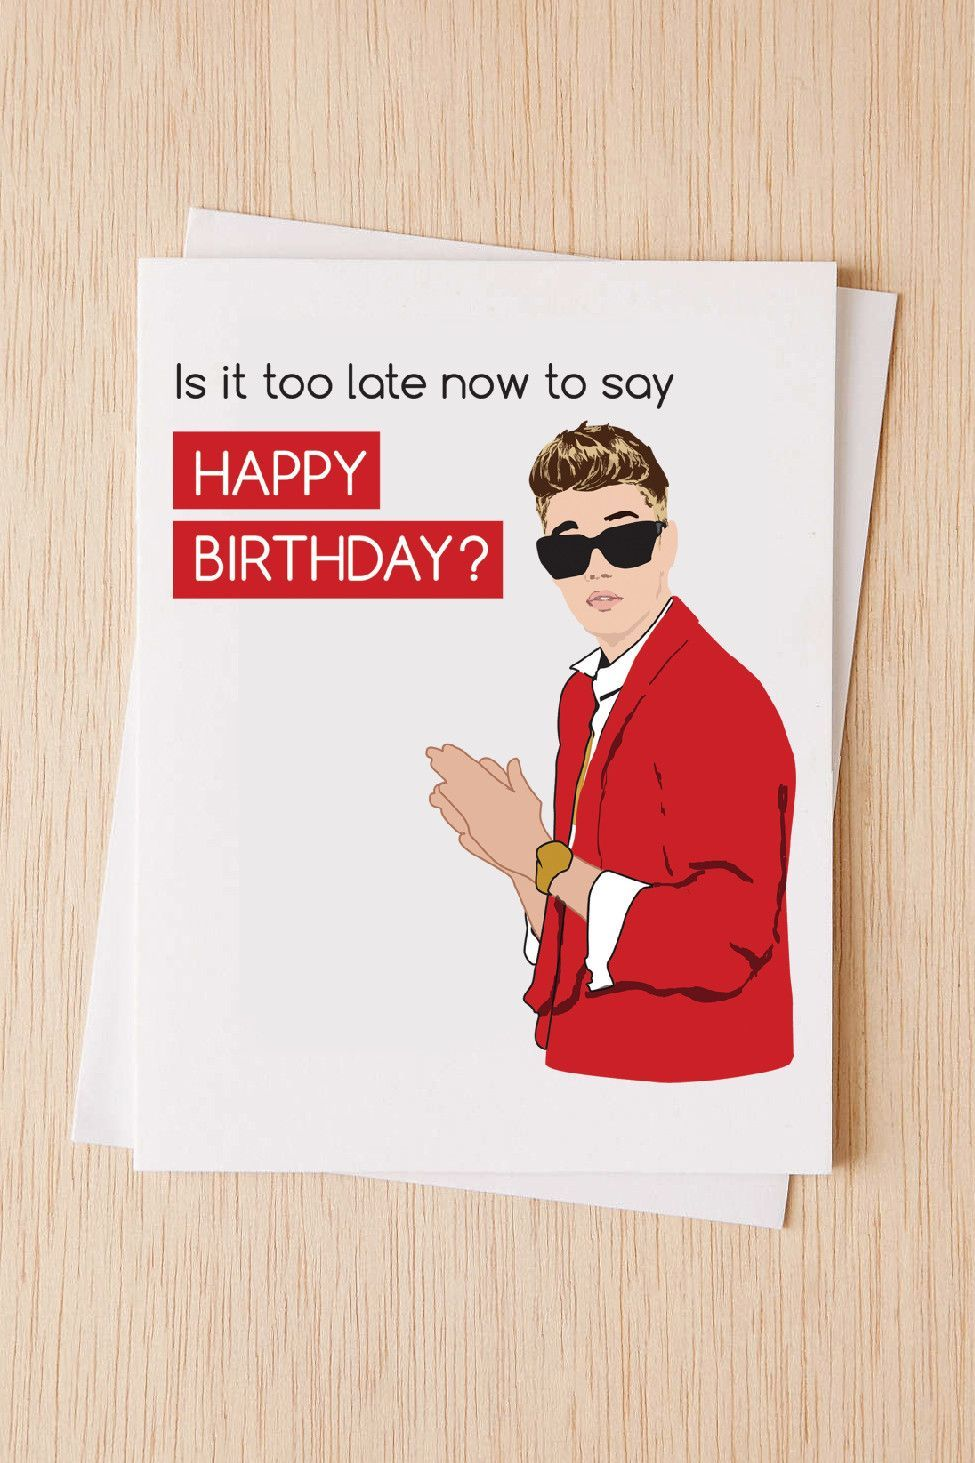 Funny Belated Birthday Card, Justin Bieber, Is it too late